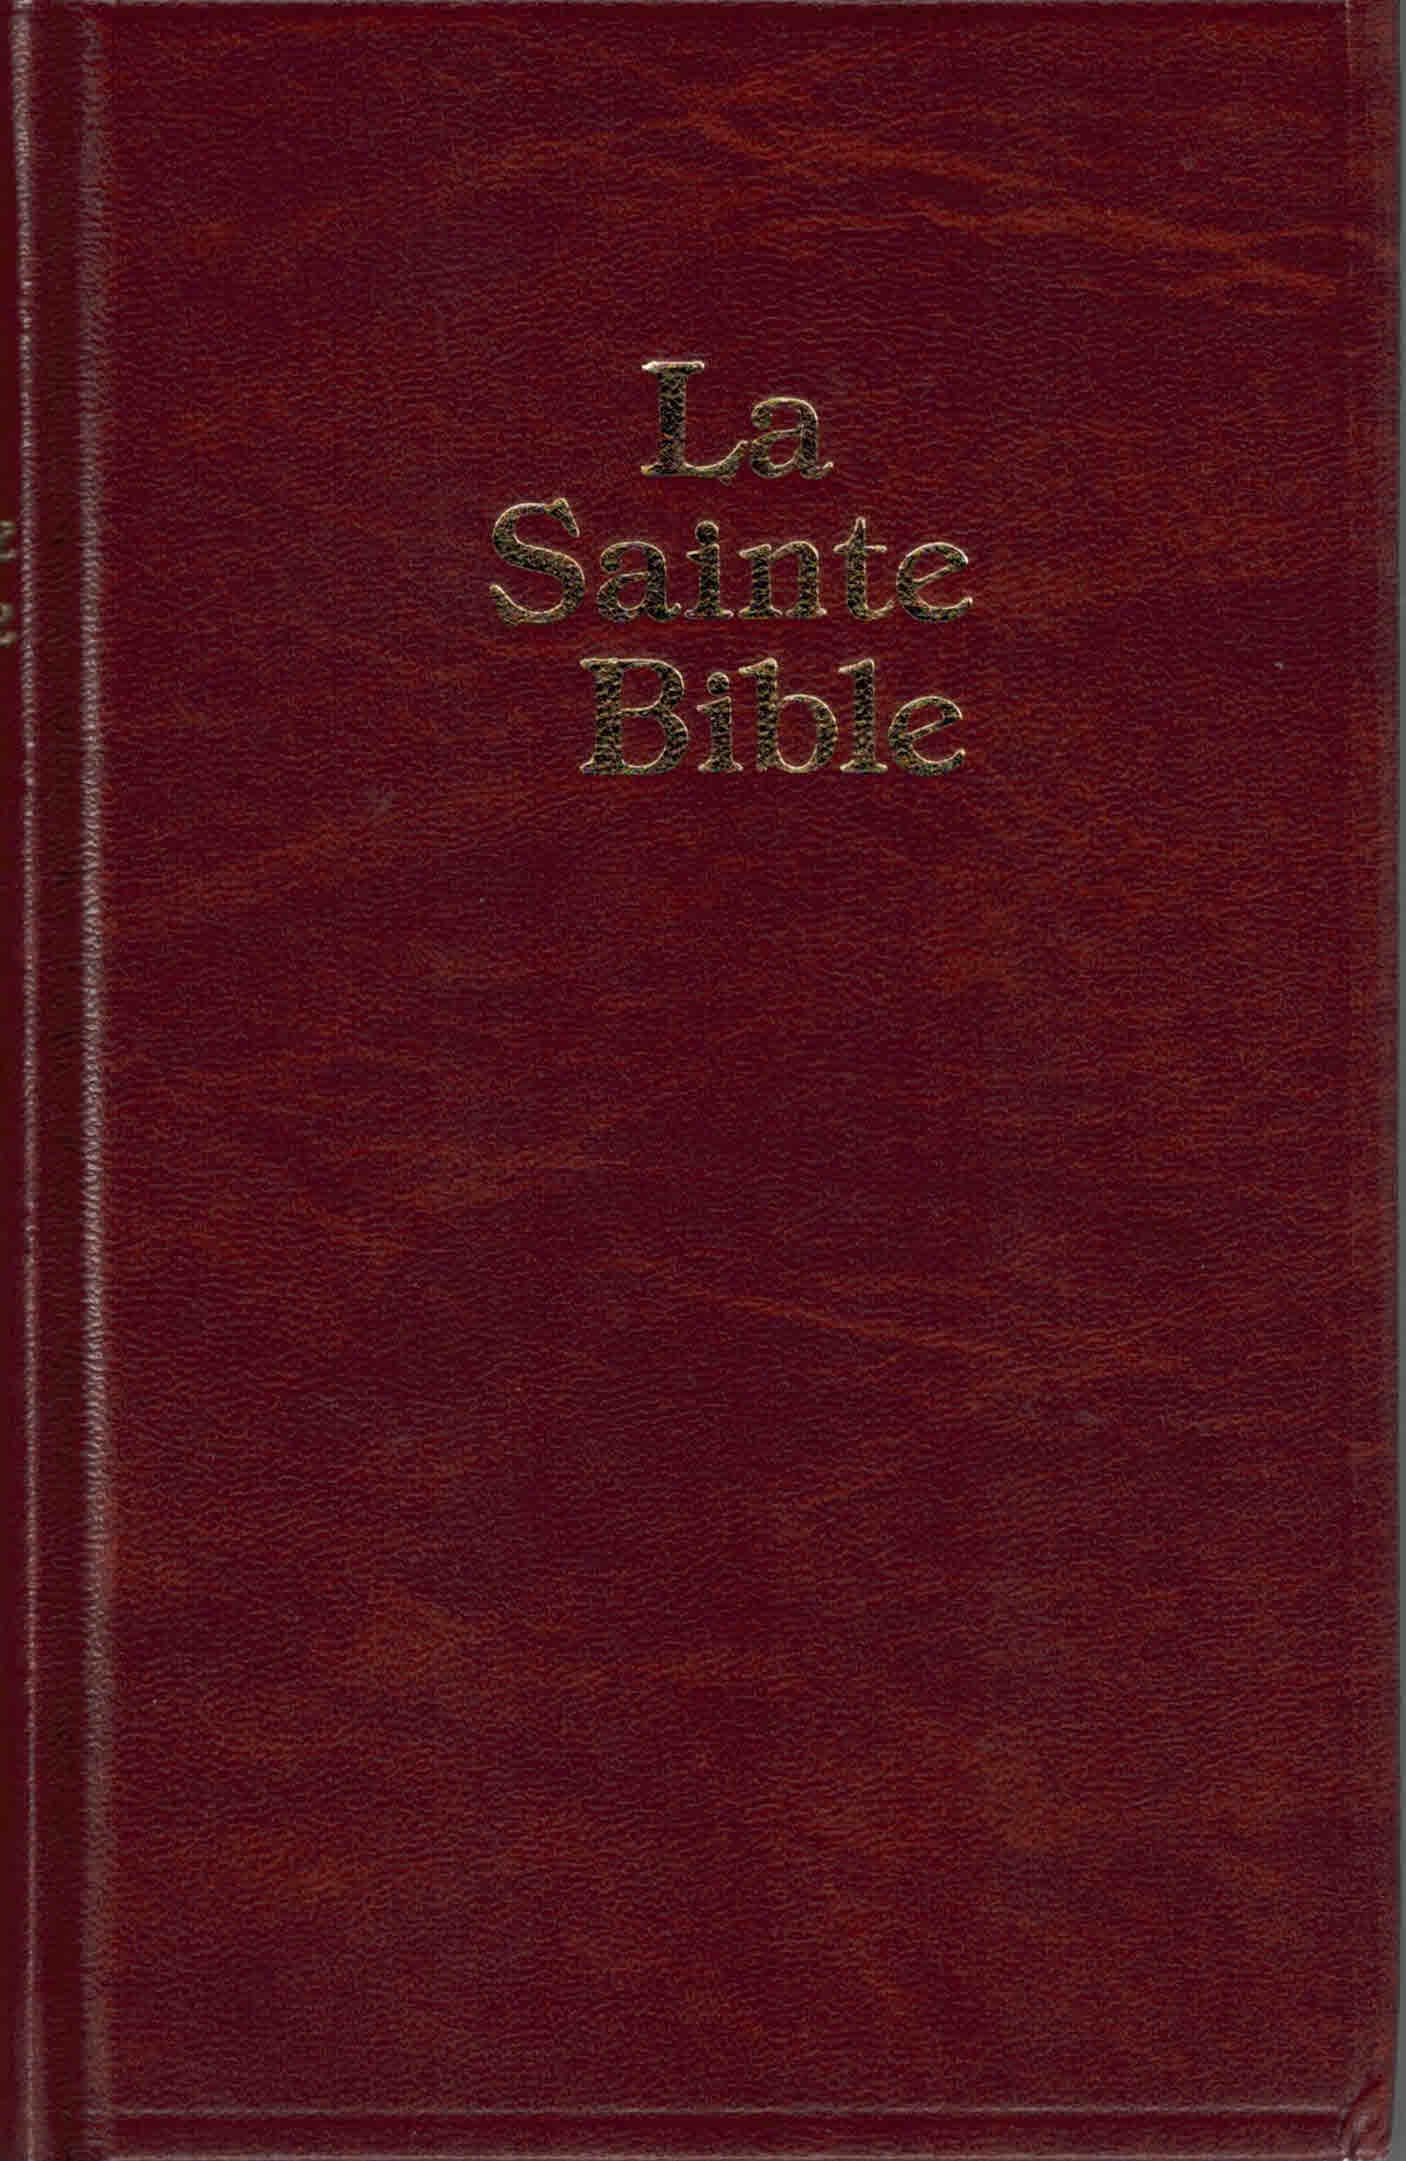 Bible Darby petit format marron